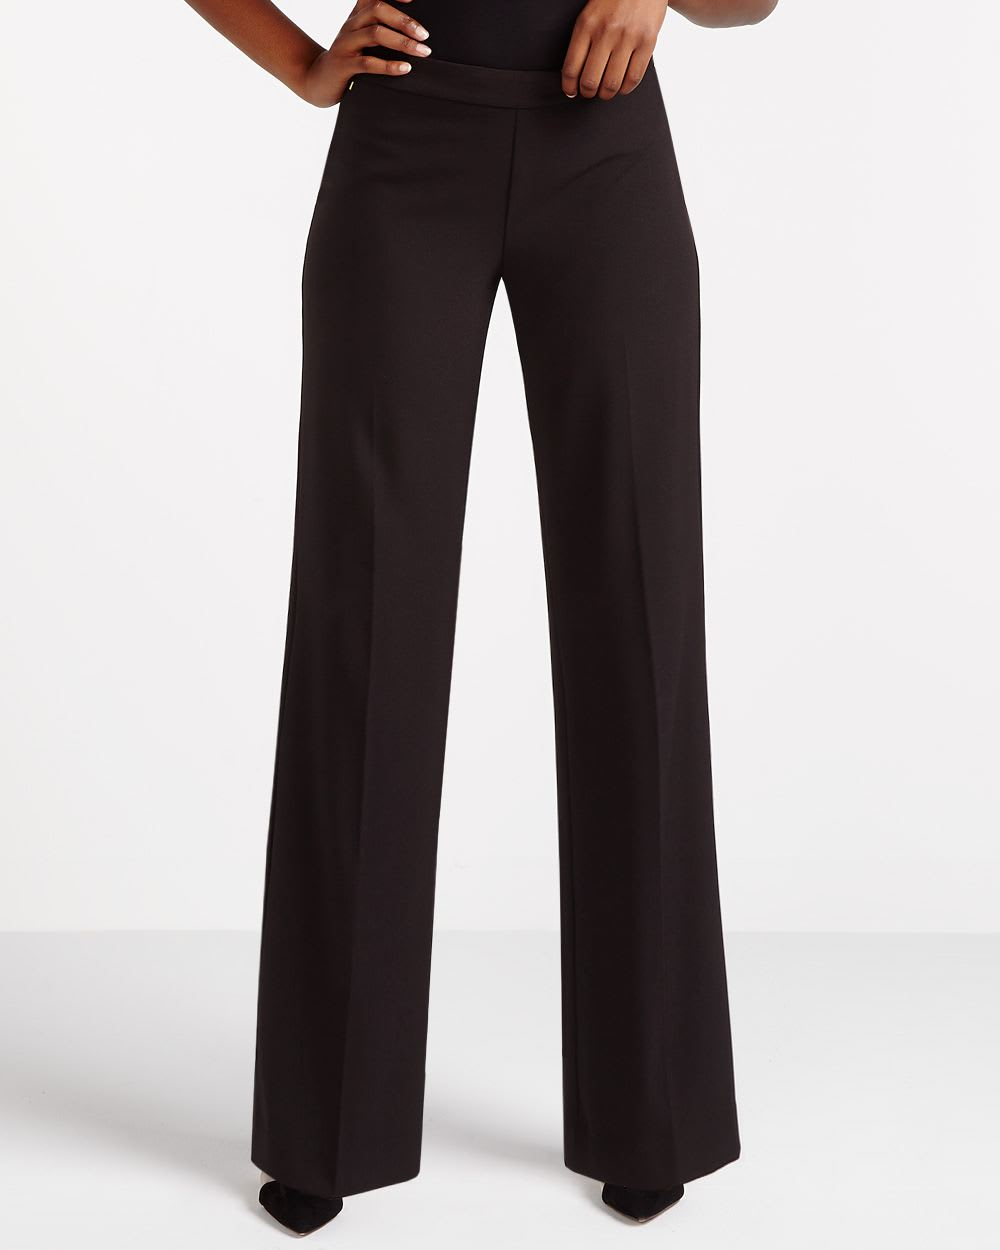 Where to buy petite dress pants